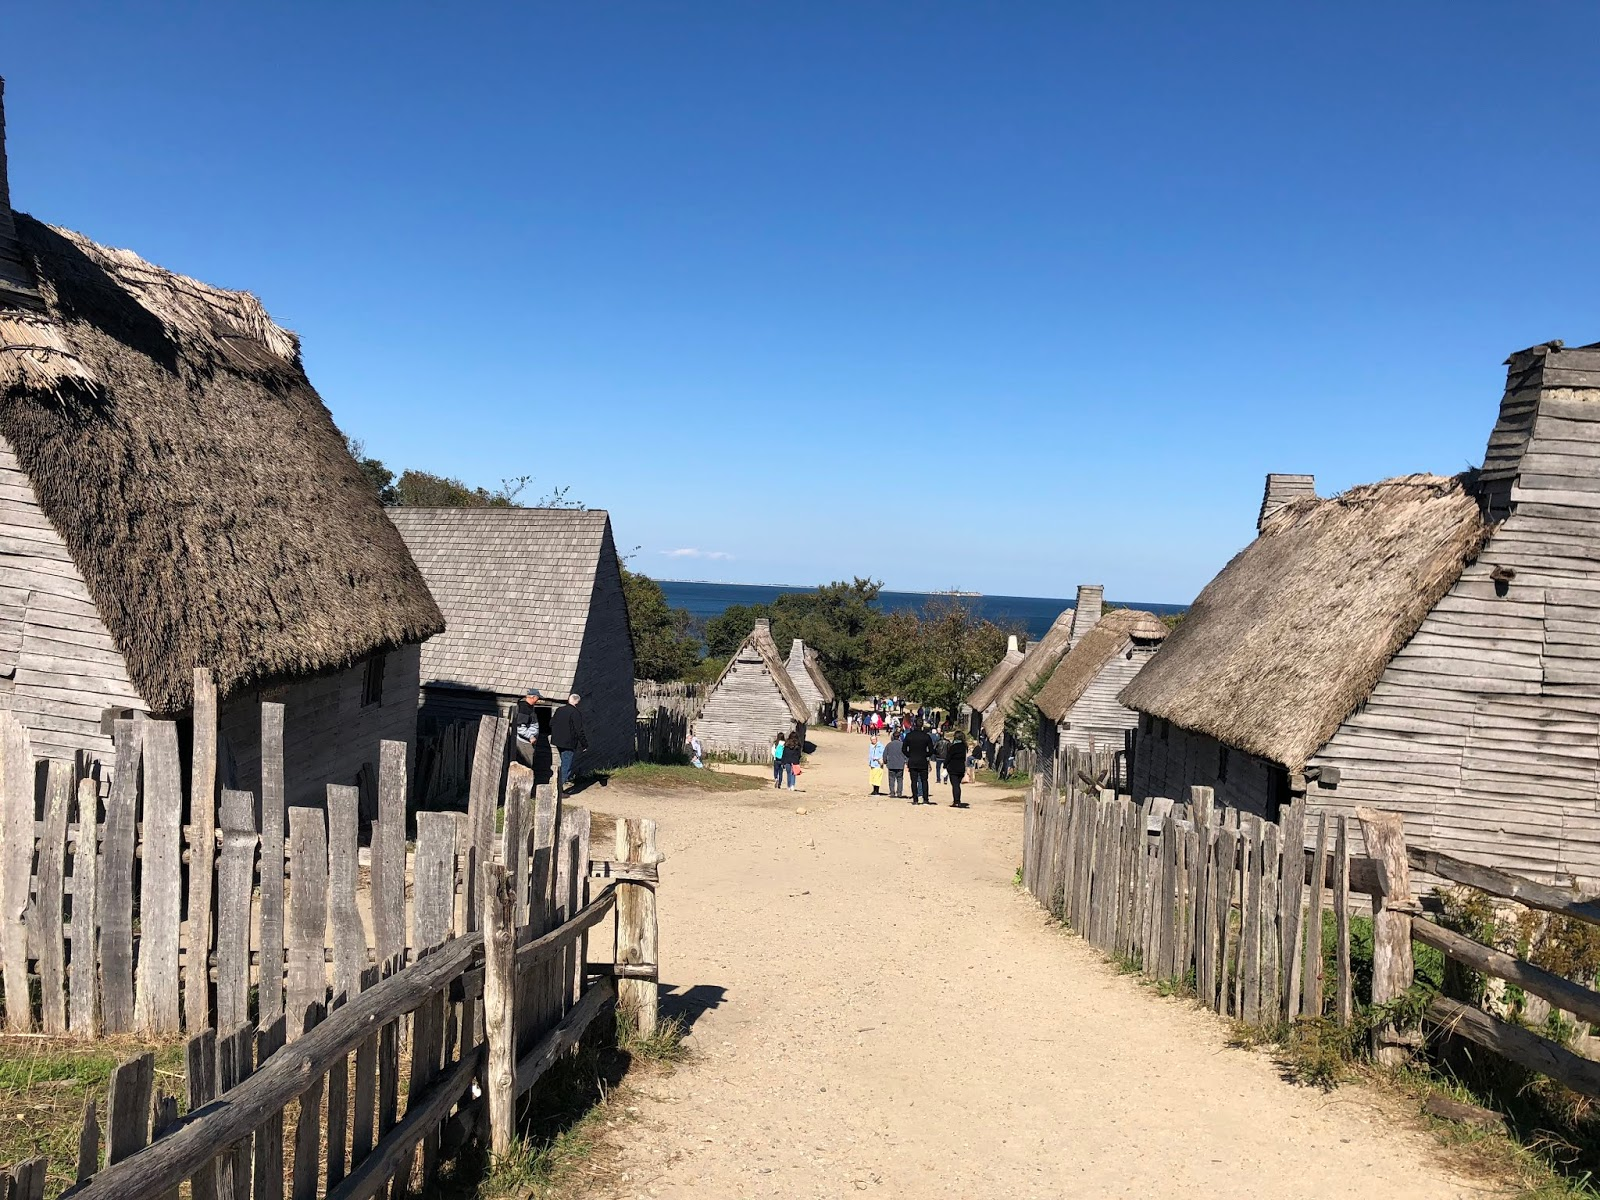 clmroots: Plymouth Colony and Plimoth Plantation